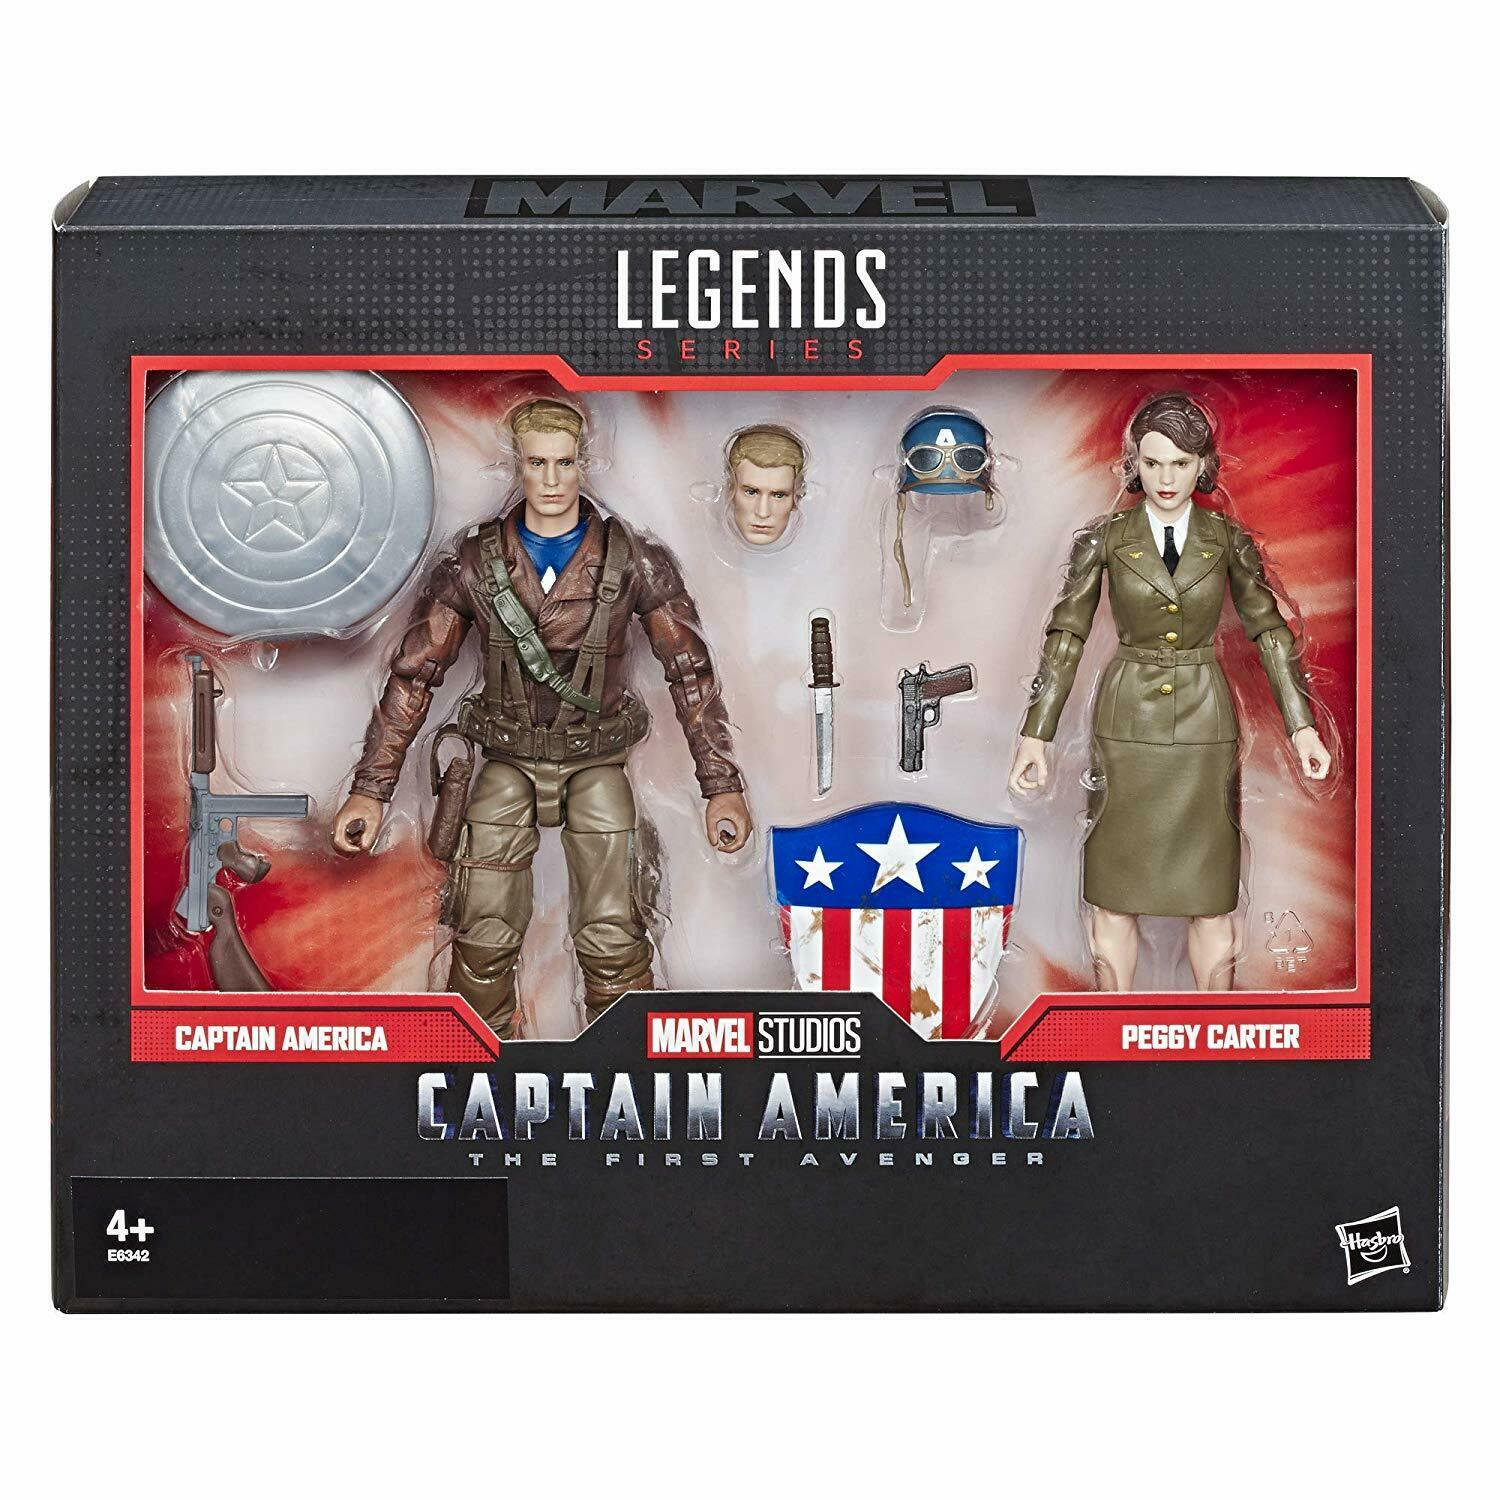 Marvel Legends 80 ANNICAPITAN AMERICA & Peggy autoTER  IN STOCK